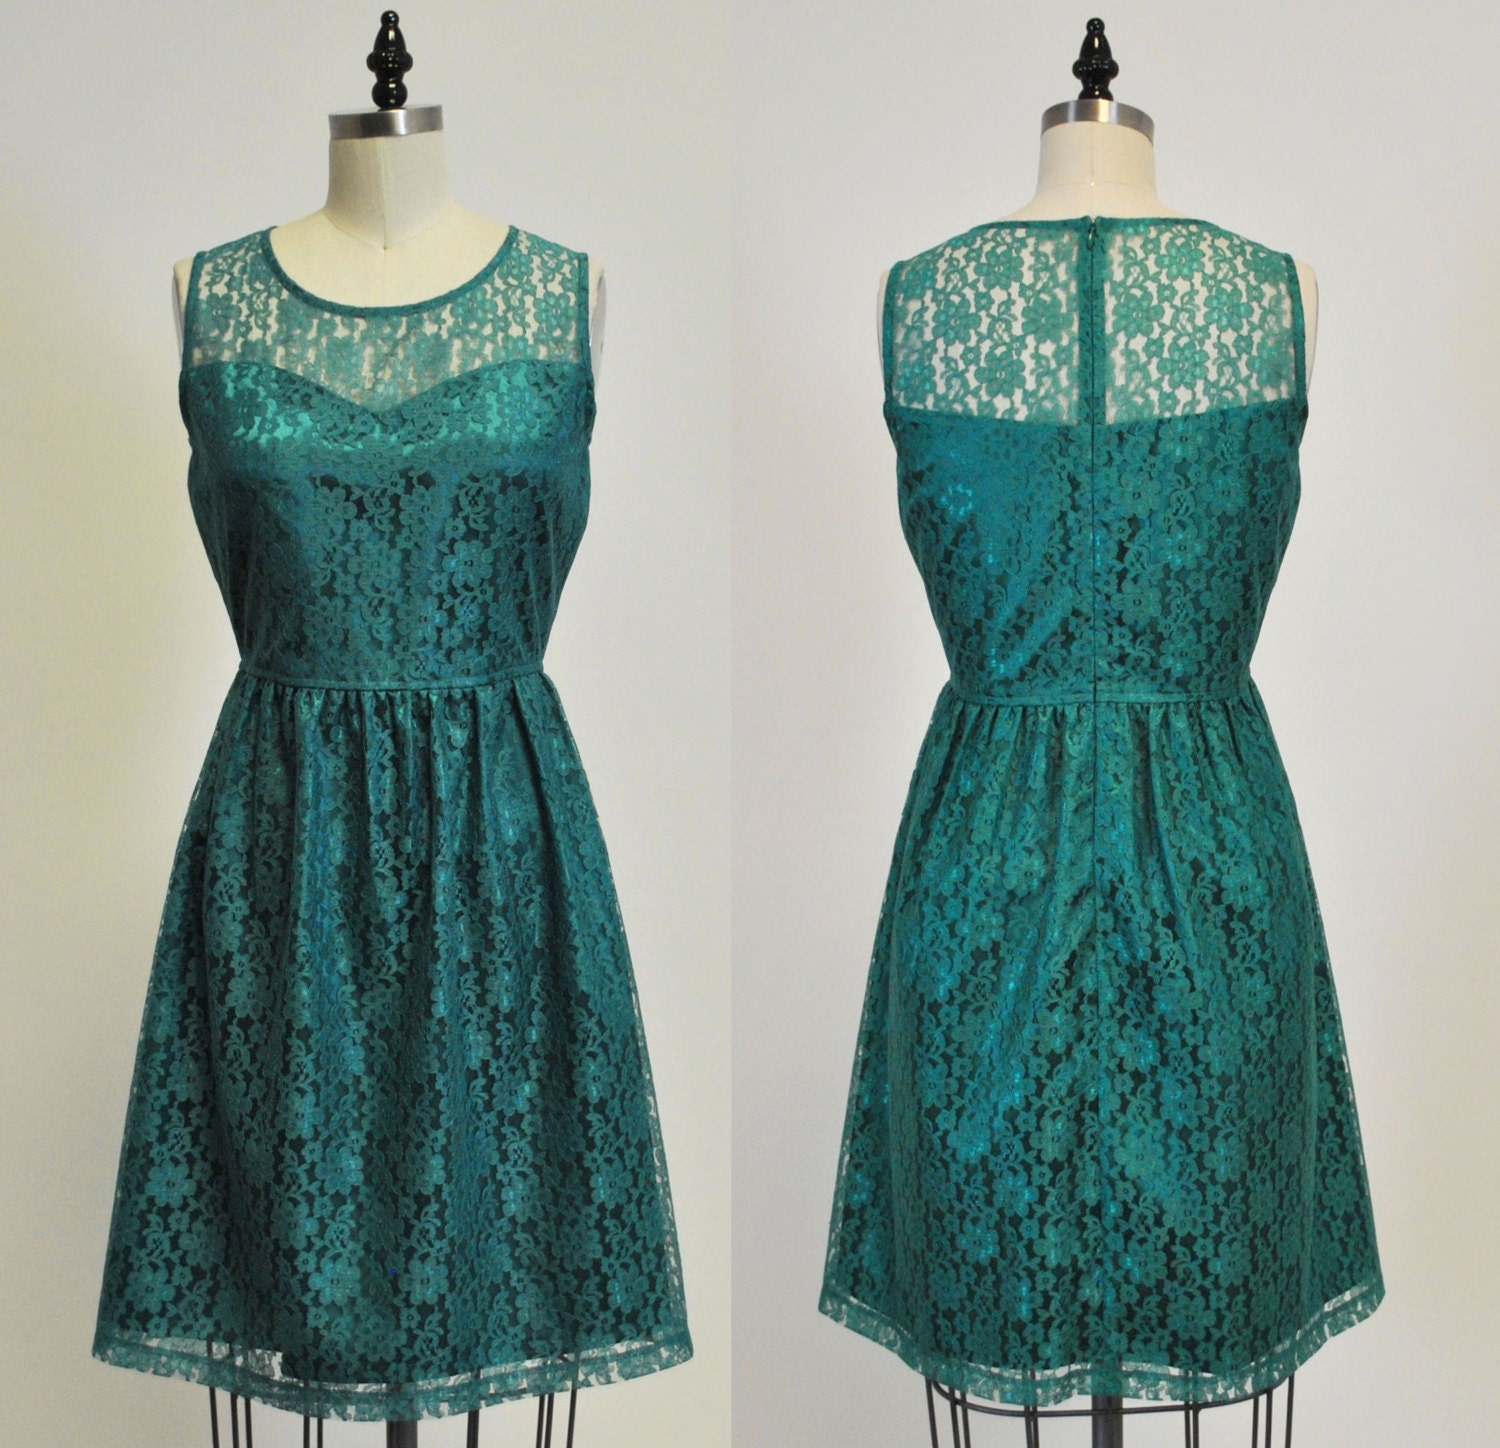 PROVENCE Jade : Jade green lace dress sweetheart neckline